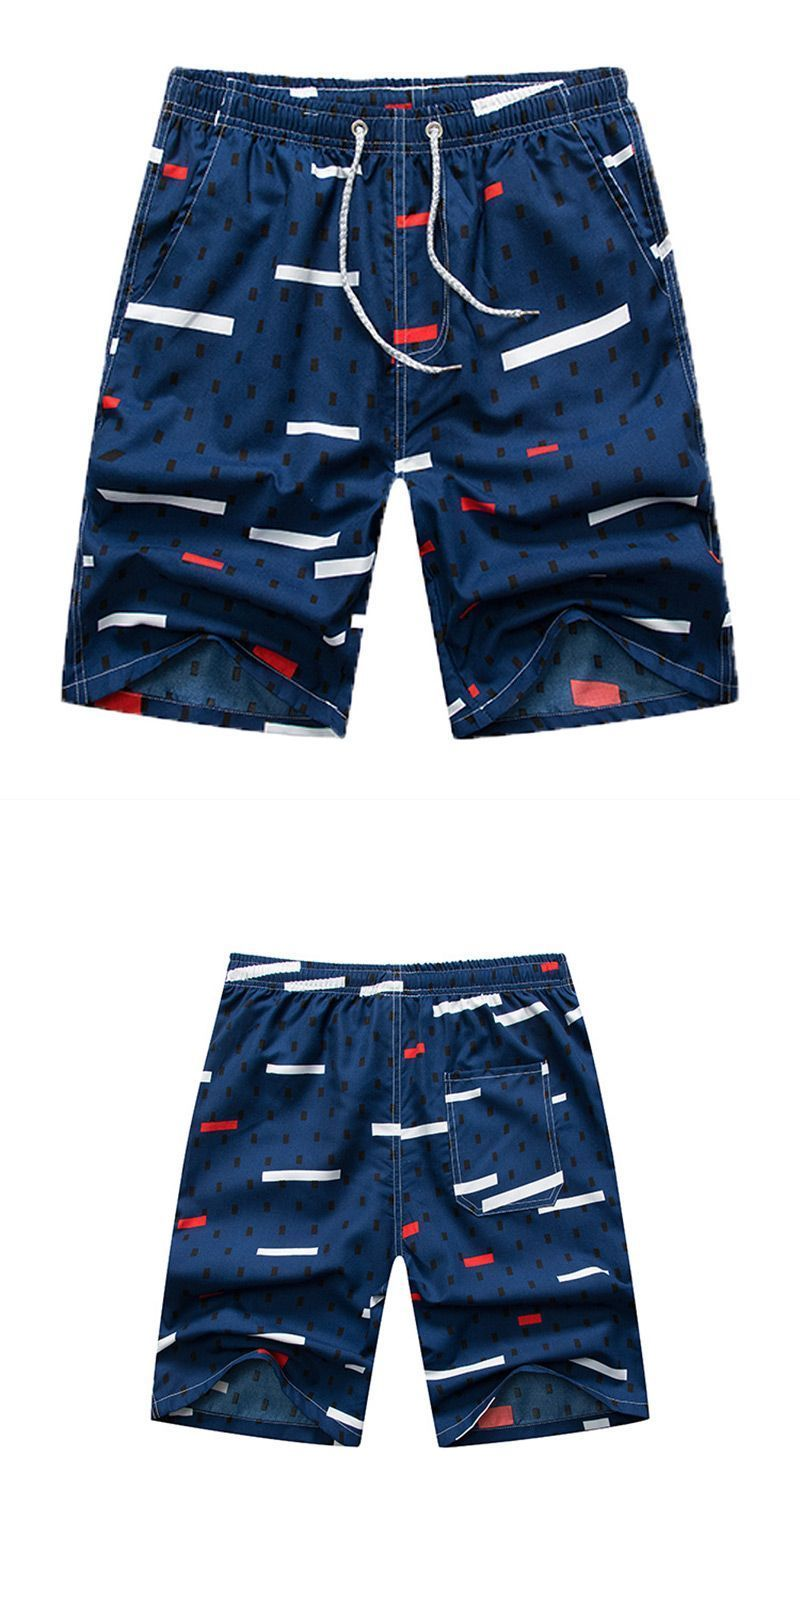 Even Lift Bro Fork Lift Mens Classic Summer Boardshorts with Pockets